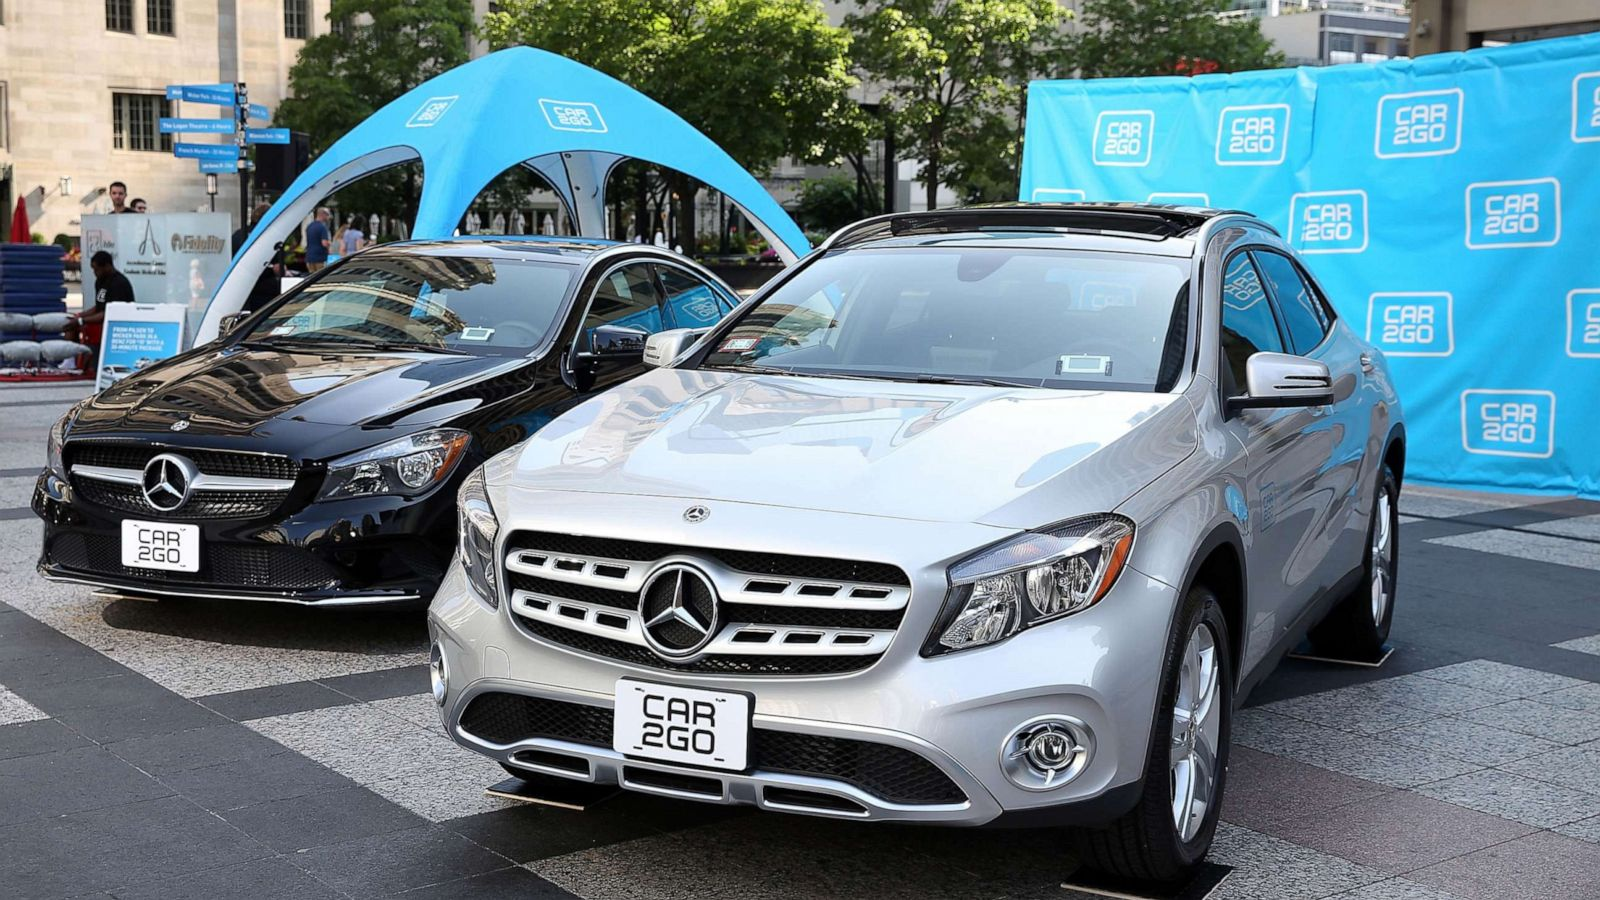 Car To Go >> 21 Charged After Dozens Of Mercedes Stolen From Car Sharing